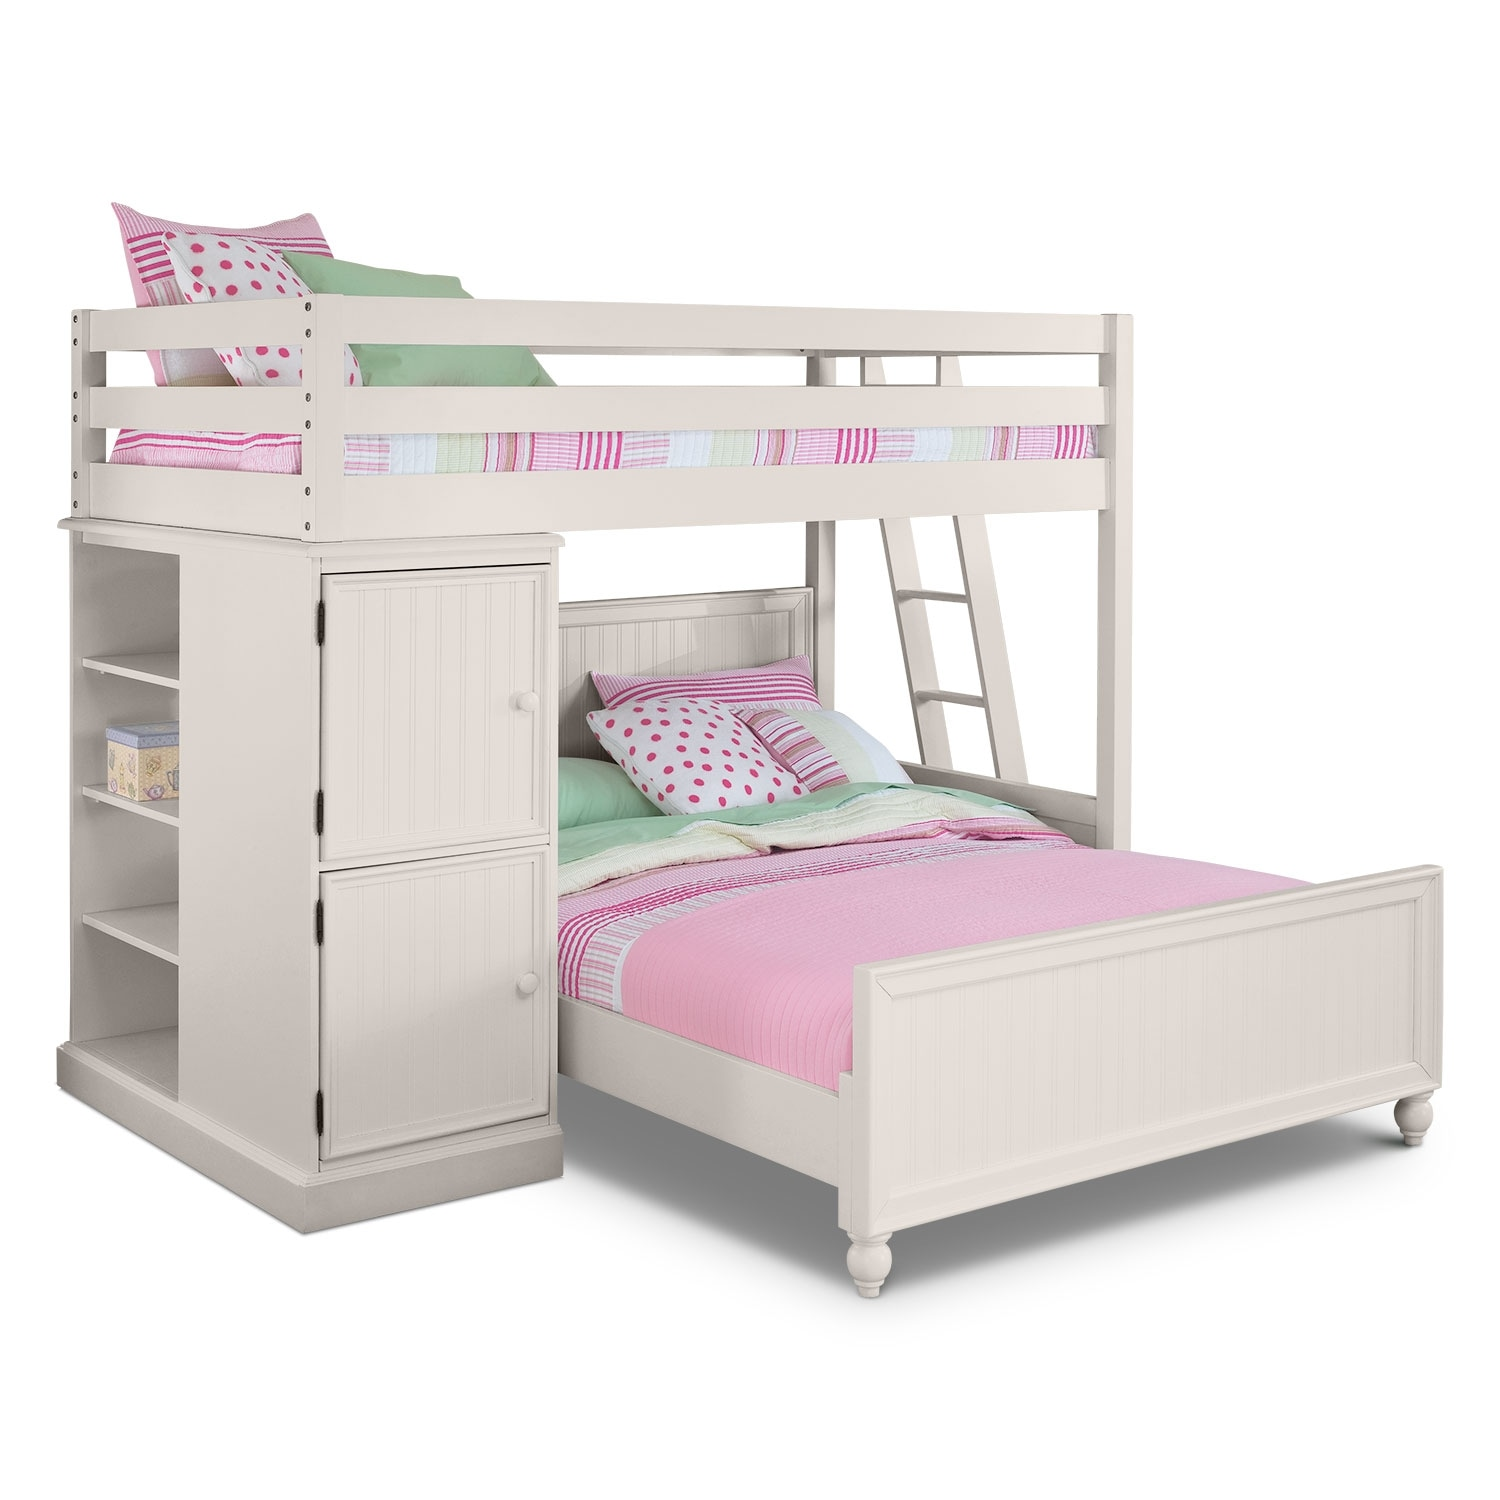 Colorworks Loft Bed With Full Bed White Value City